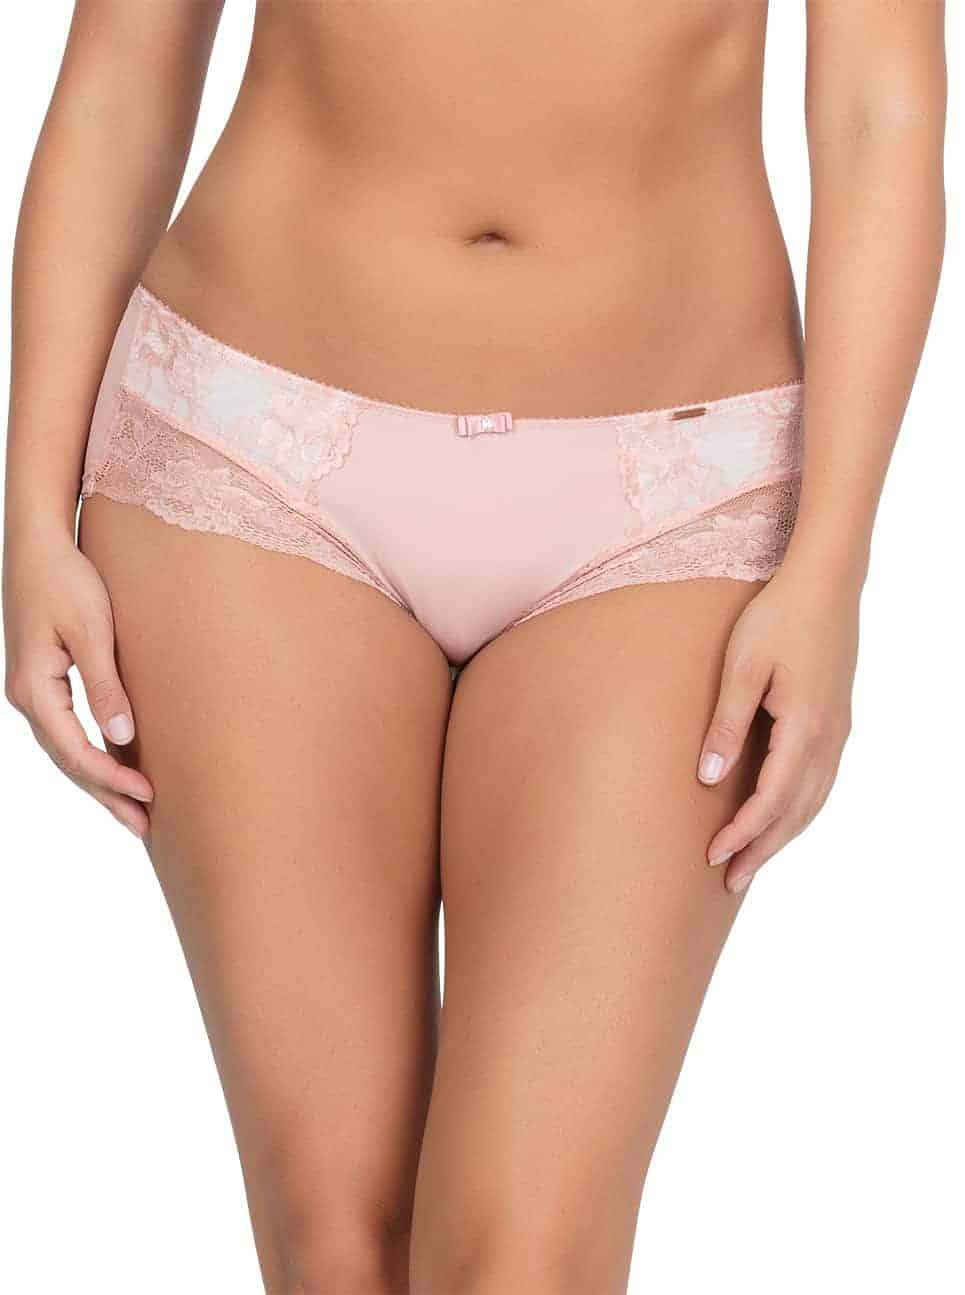 Marion HipsterP5395 PinkParfait Front 1 - Marion Hipster – Pink Parfait – P5395